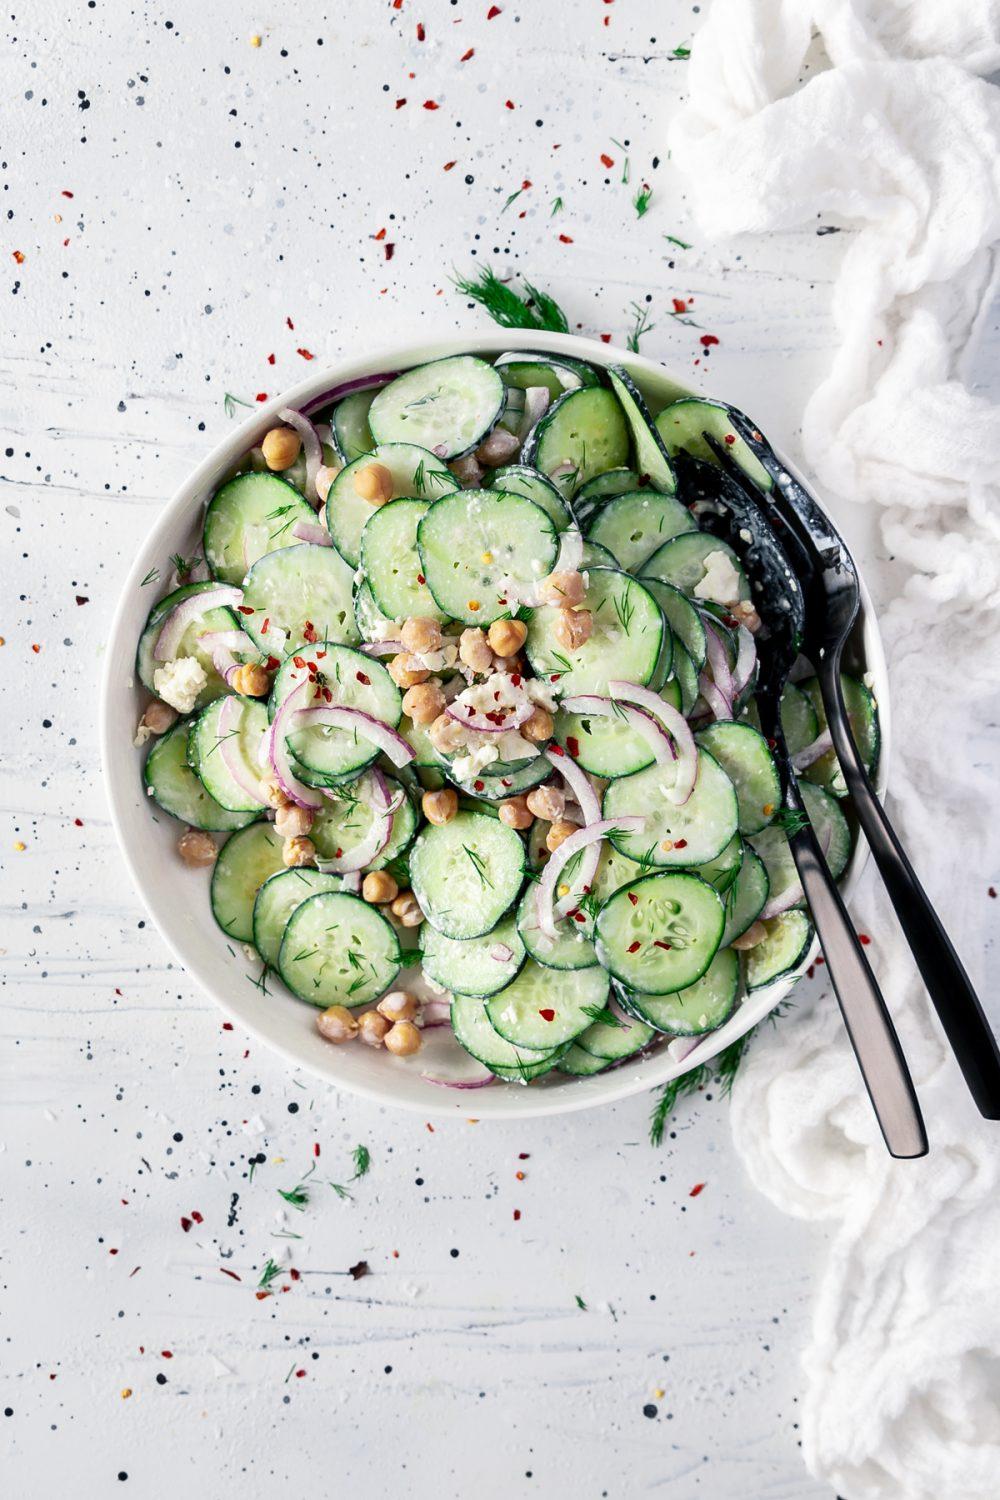 creamy cucumber salad with chickpeas, red onion, feta, and dill.